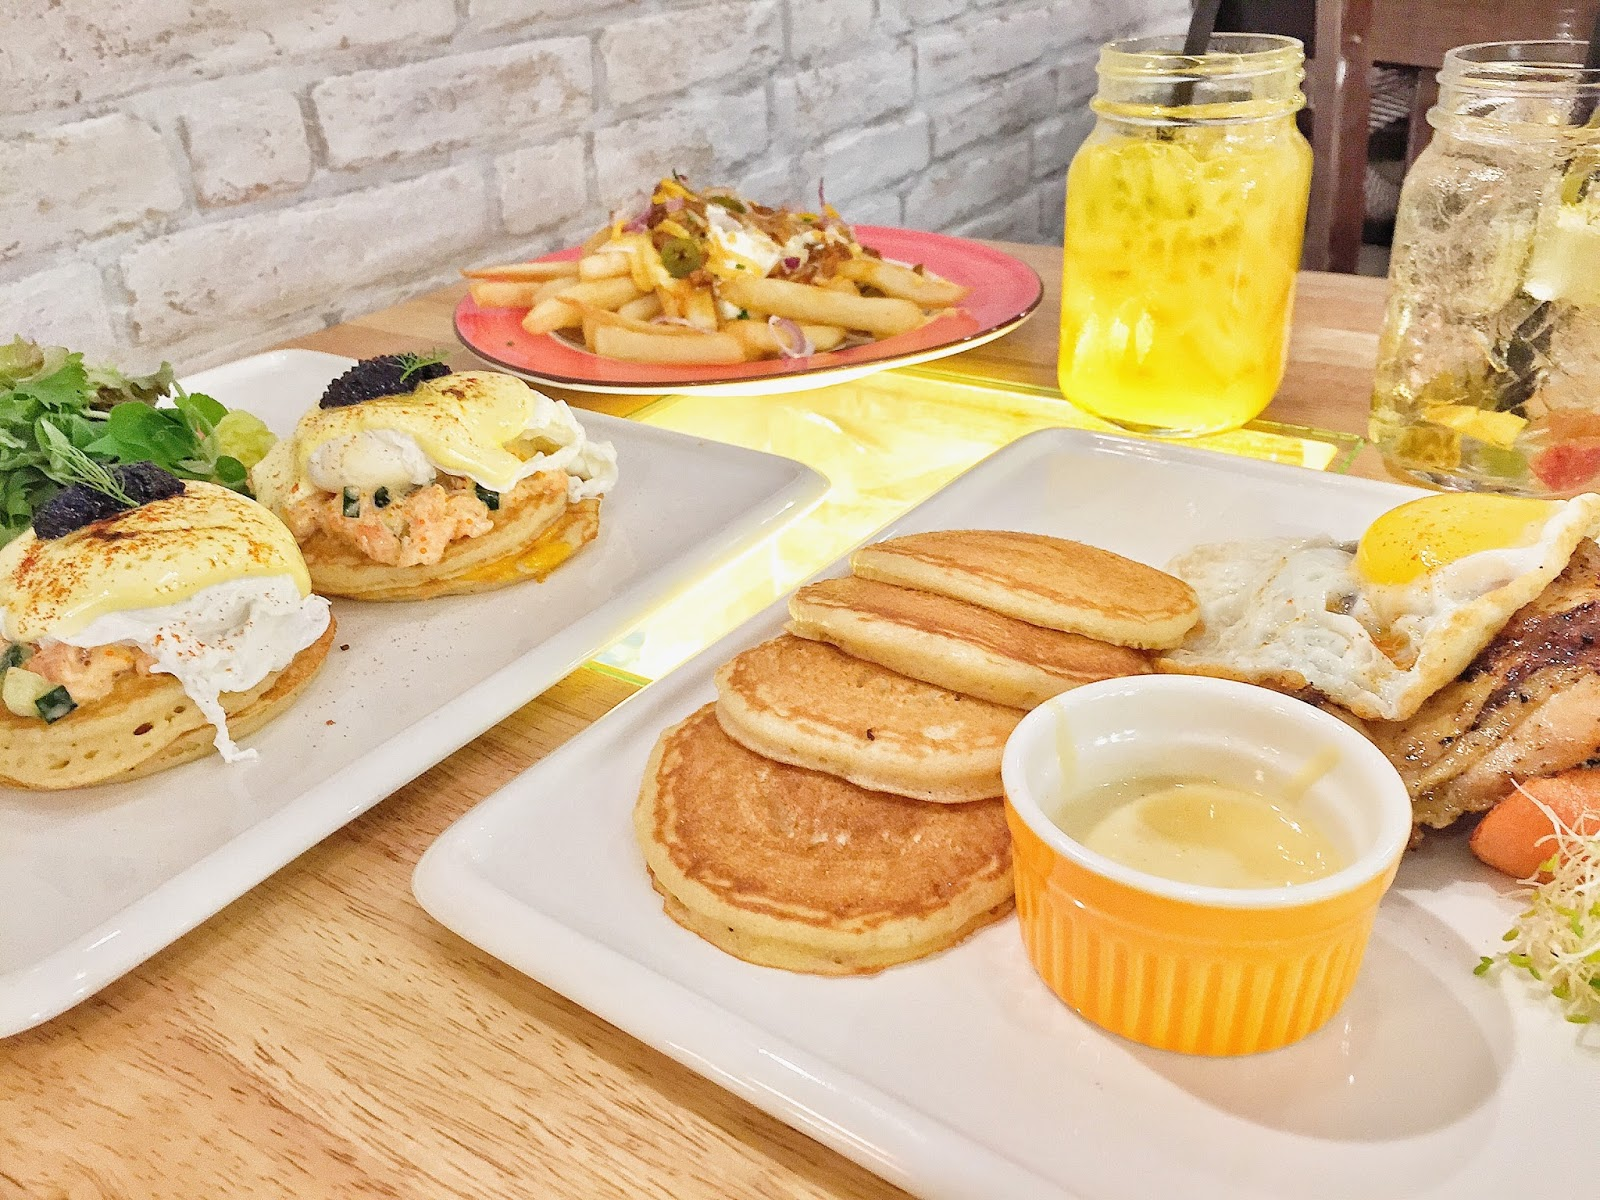 The Udder Pancake Cafe Singapore